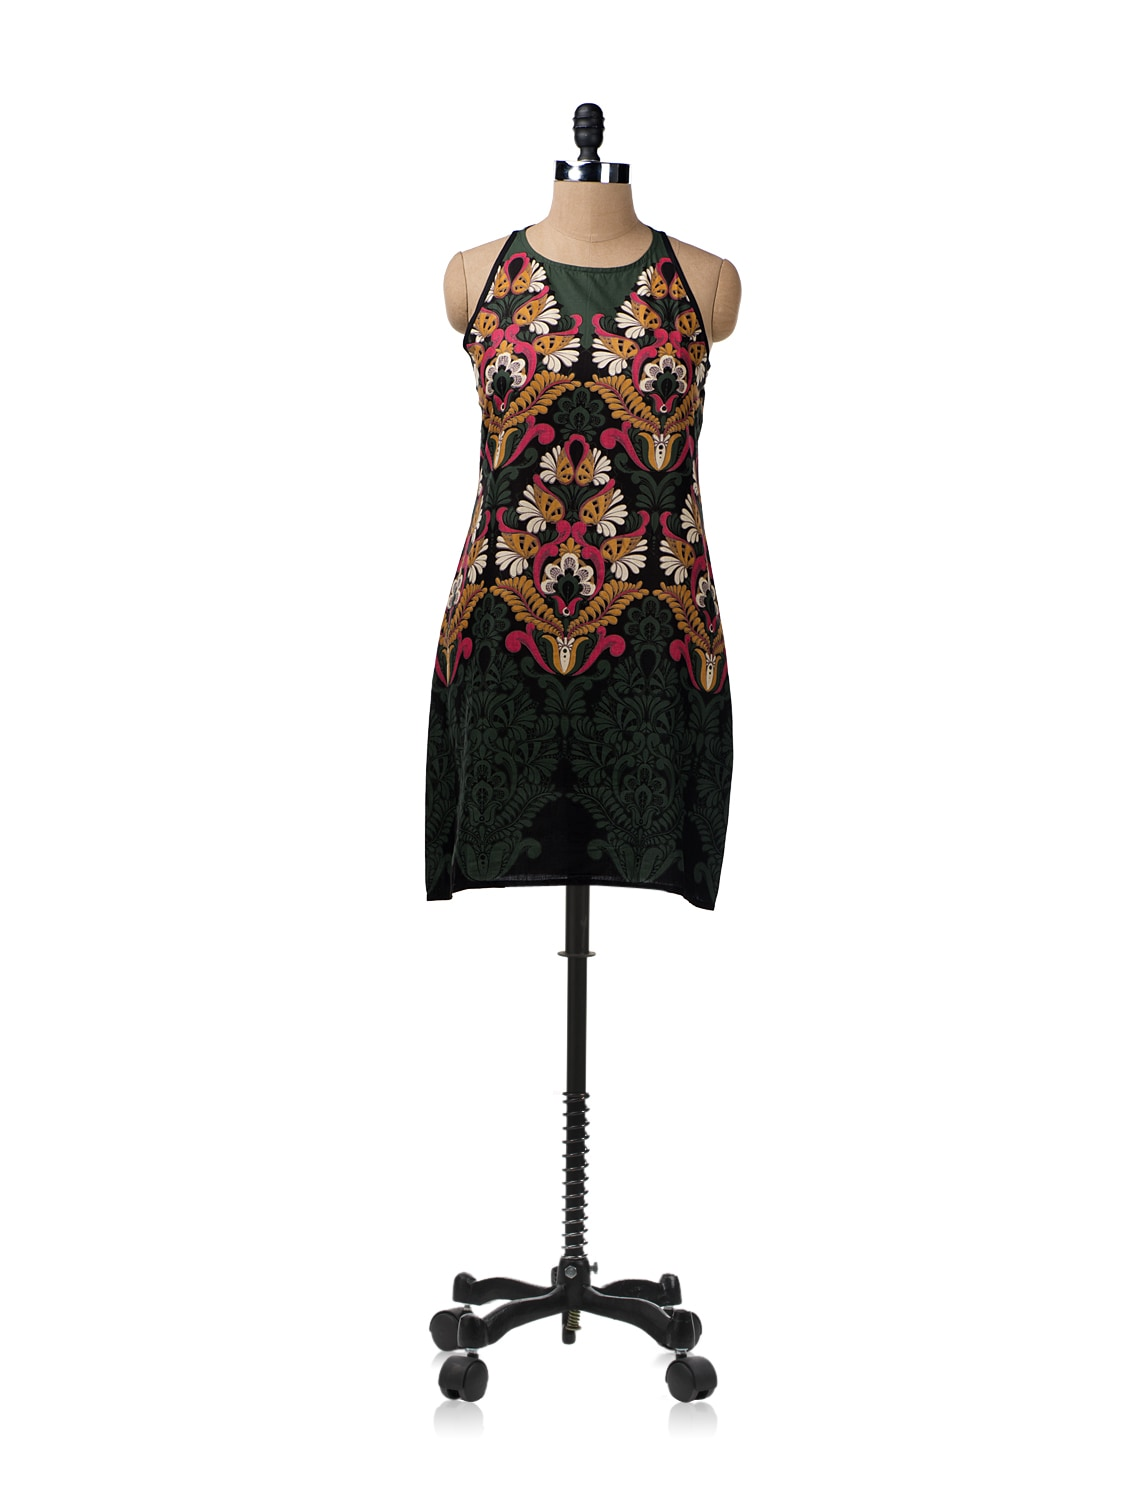 Tribal Printed Dress With Keyhole Back - ENAH